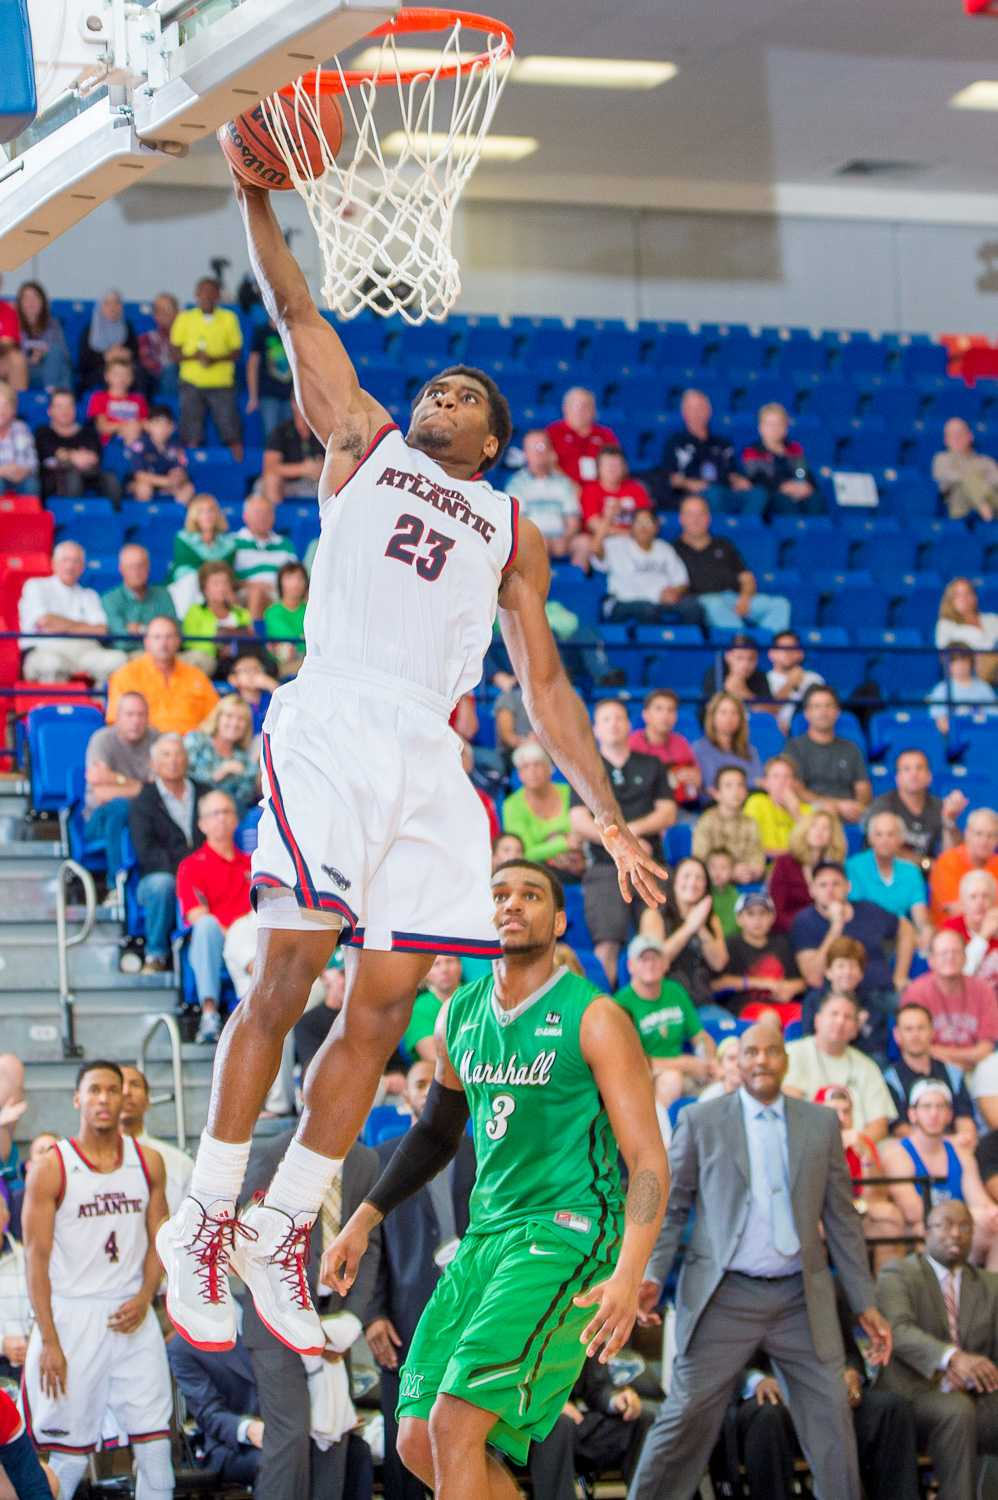 Solomon Poole (23) attempts a dunk to widen the Owl's lead in the second half.